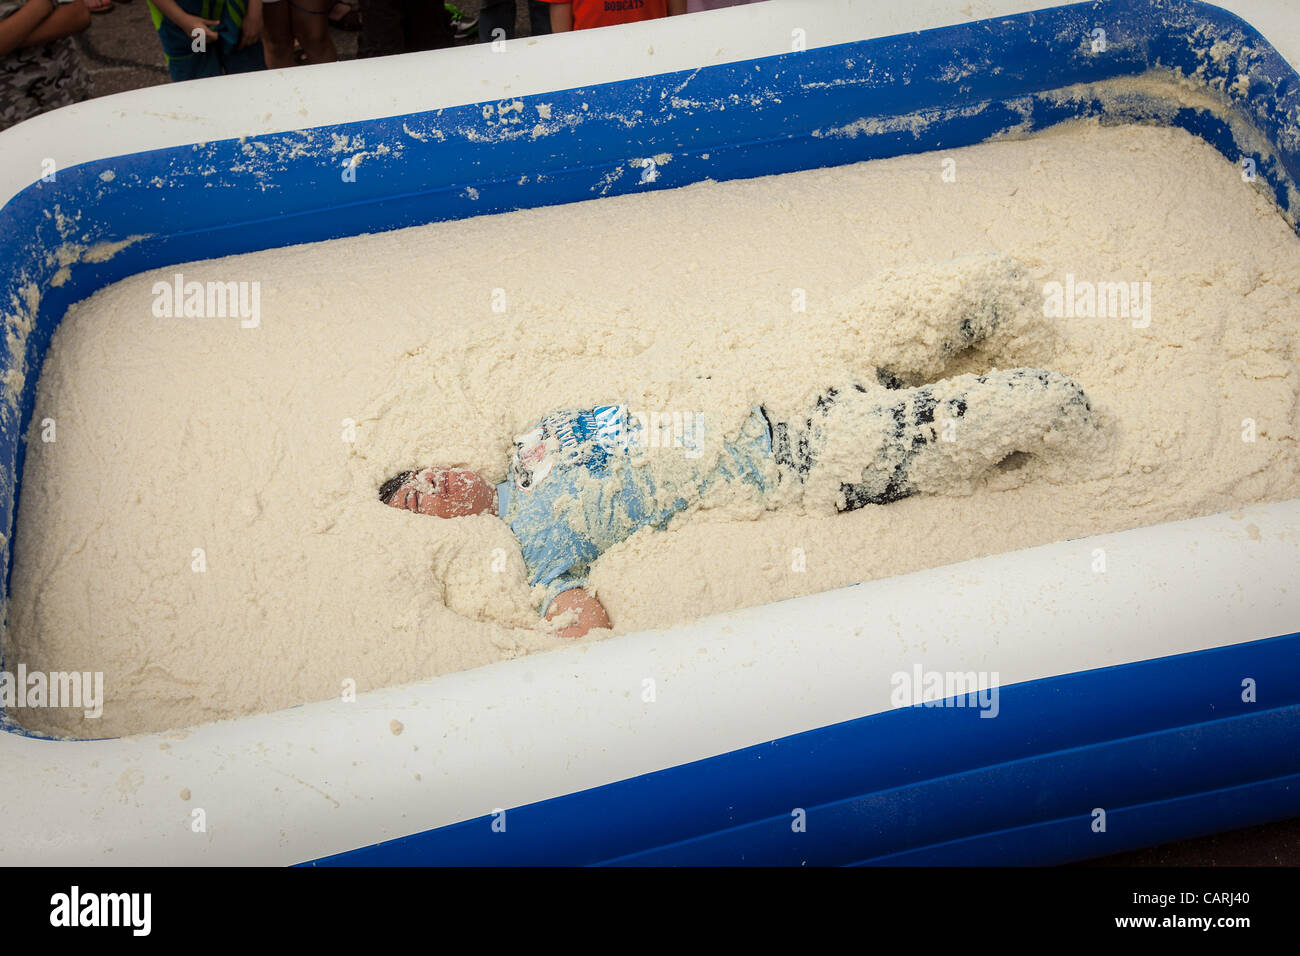 A competitor rolls around in a pool of instant grits during the grits roll competition at the World Grits Festival - Stock Image